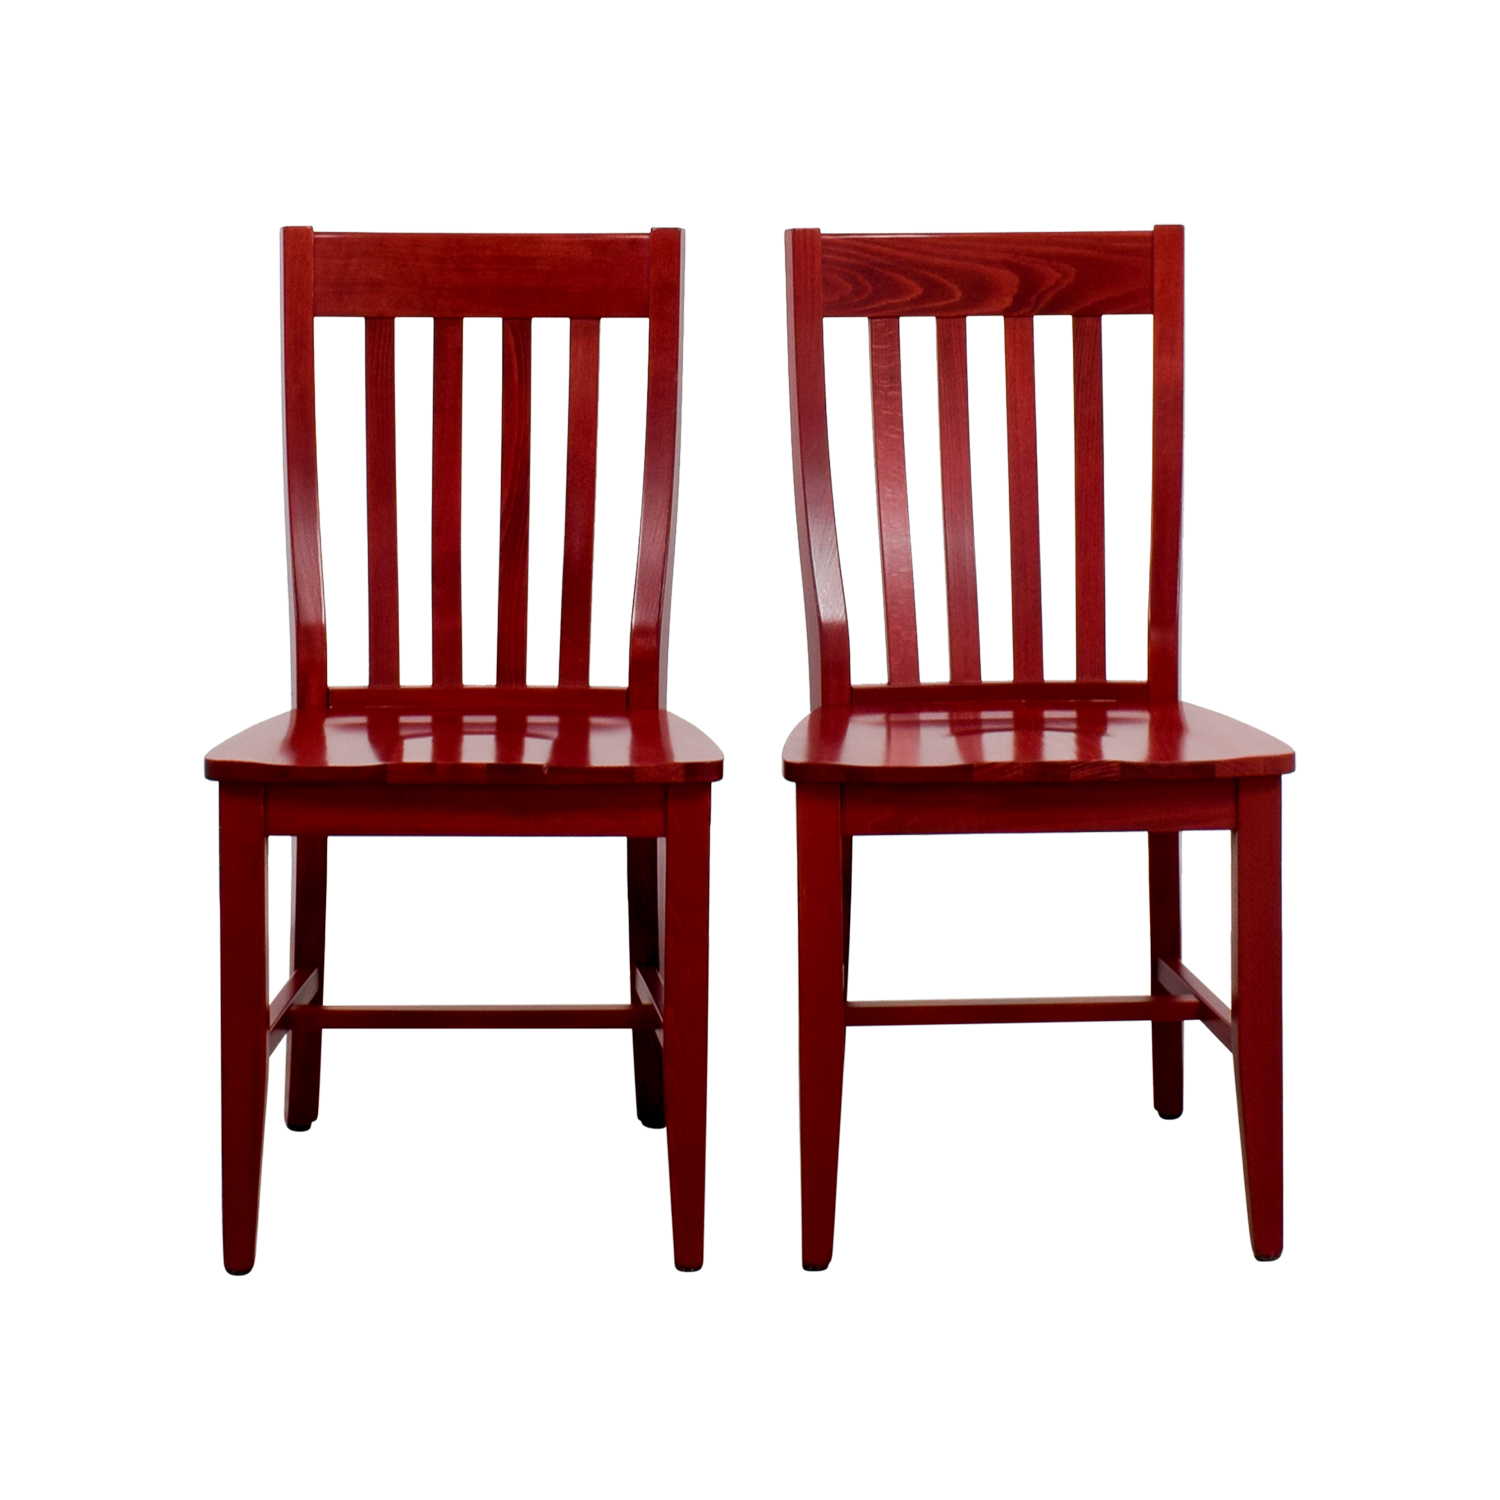 79% OFF   Pottery Barn Pottery Barn Schoolhouse Chairs / Chairs